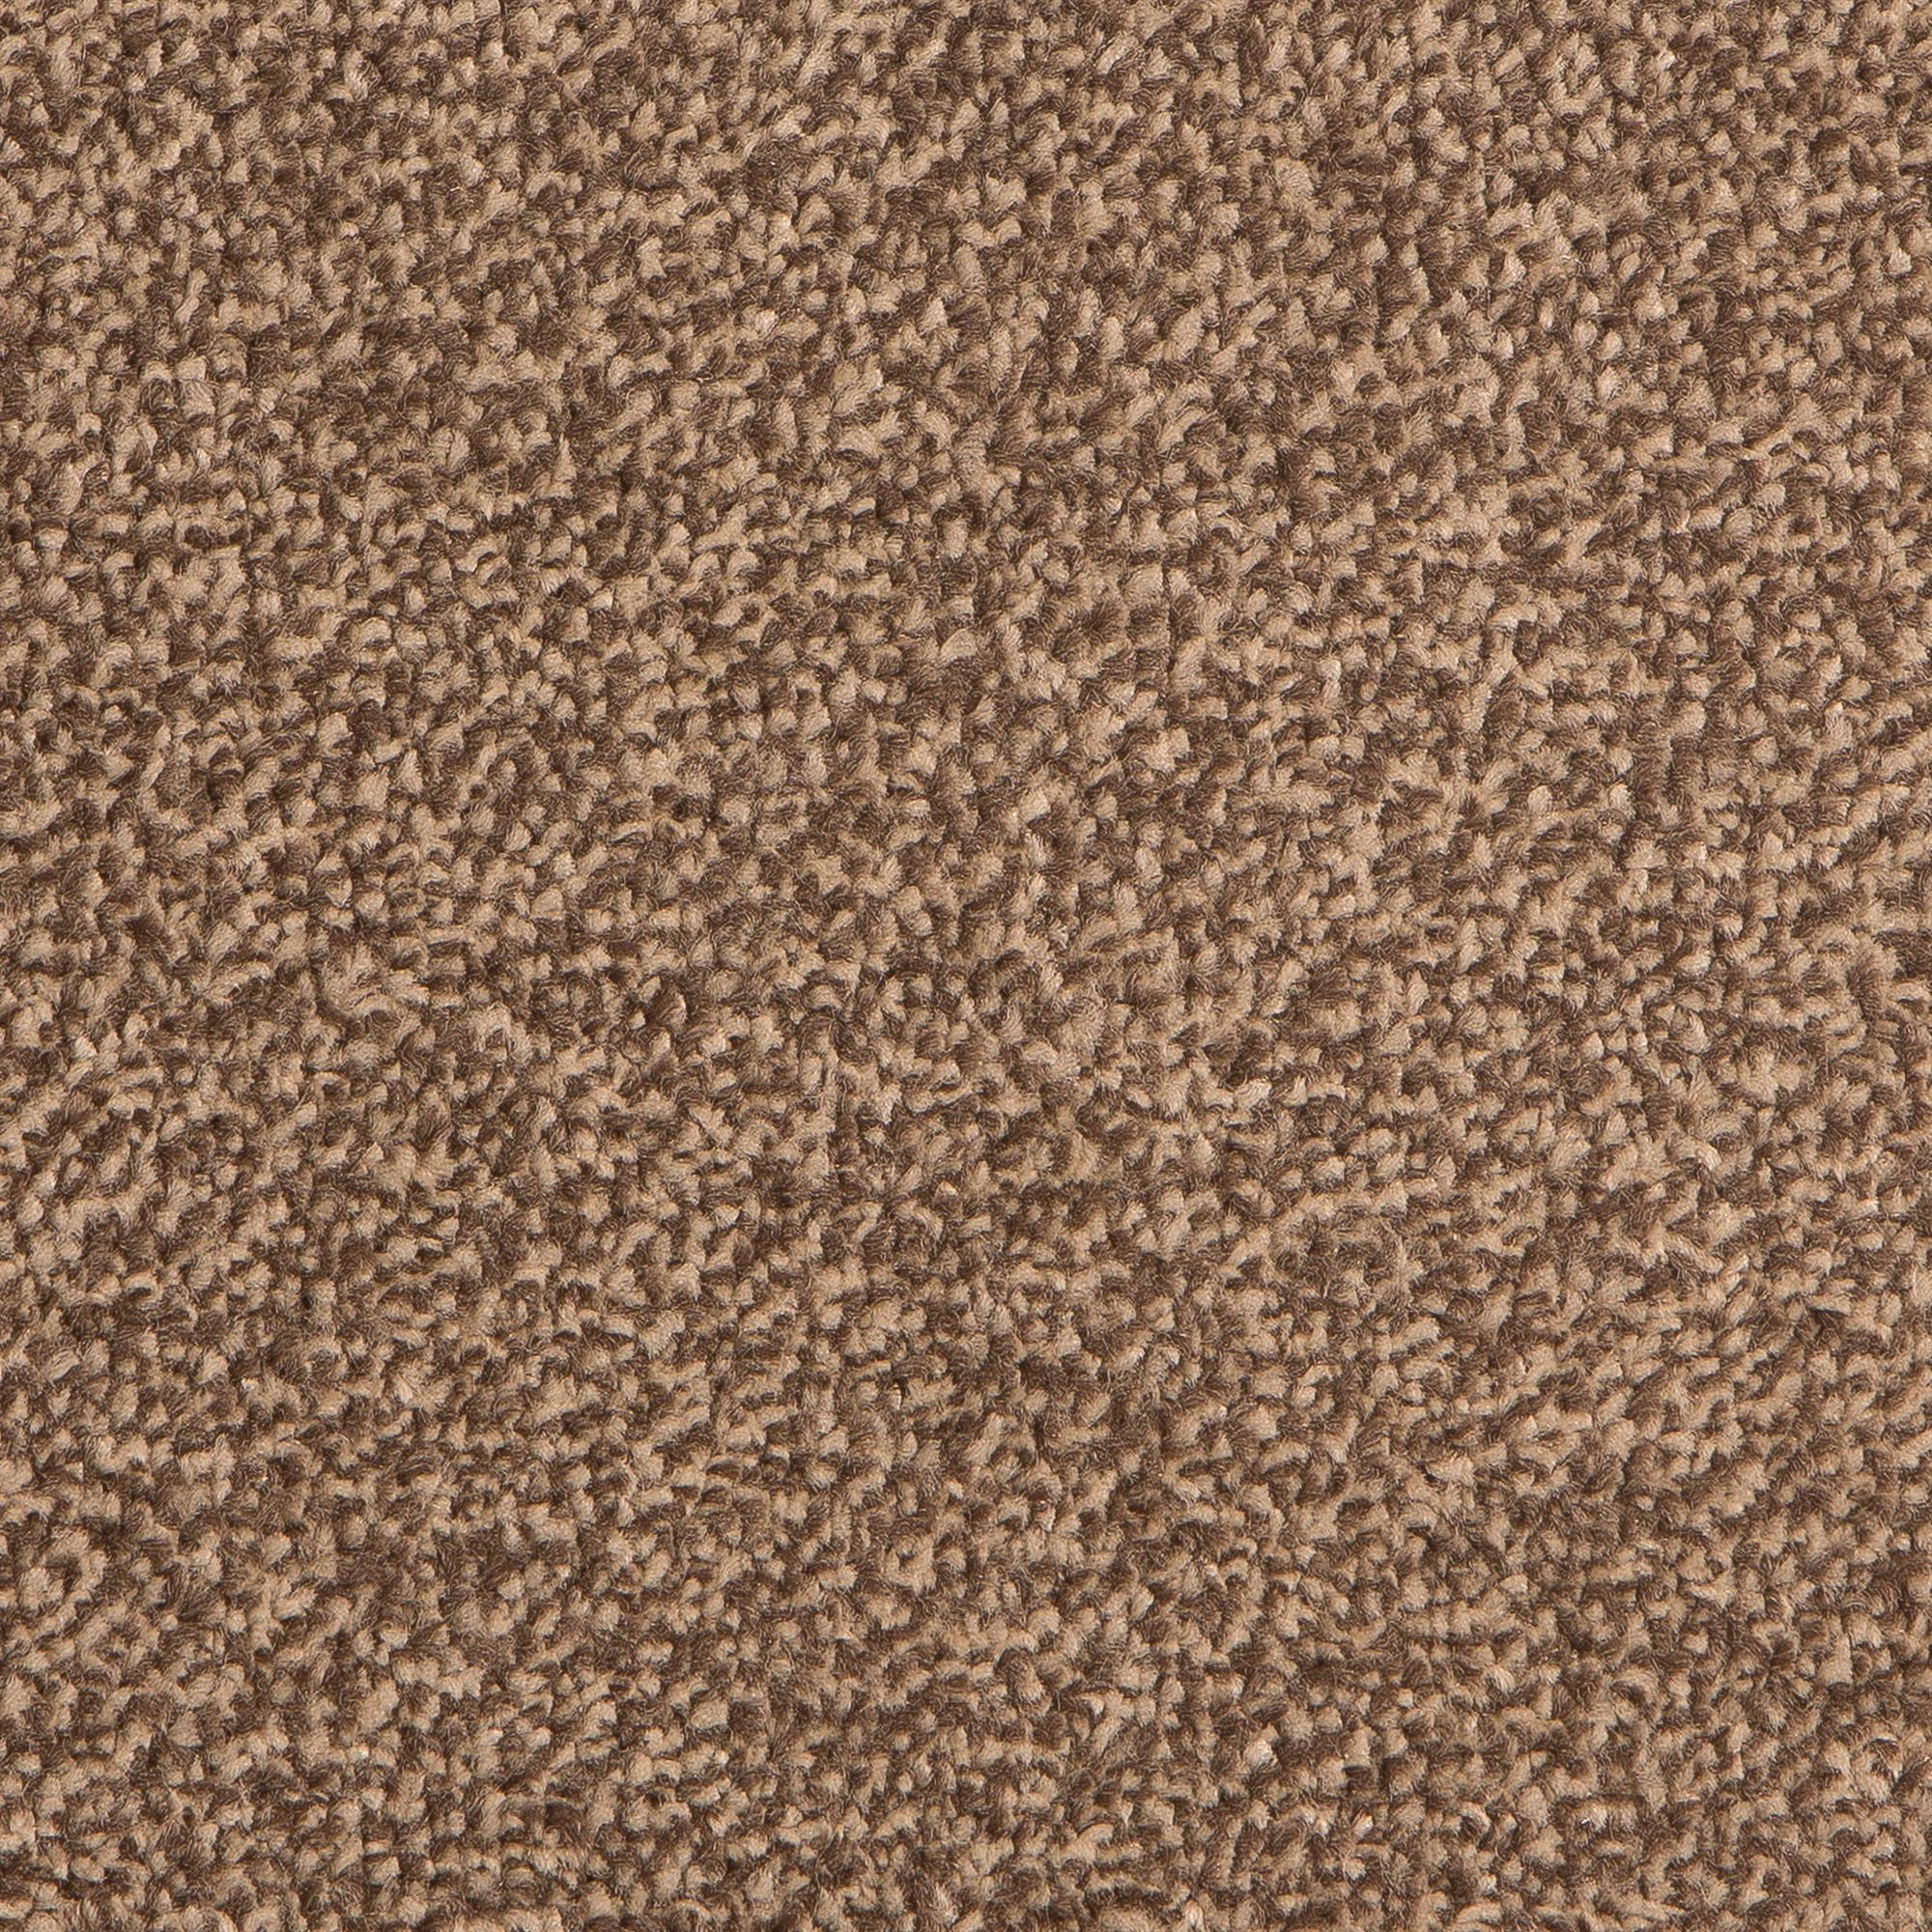 First Time Buyer Epic Carpet, Heather, swatch